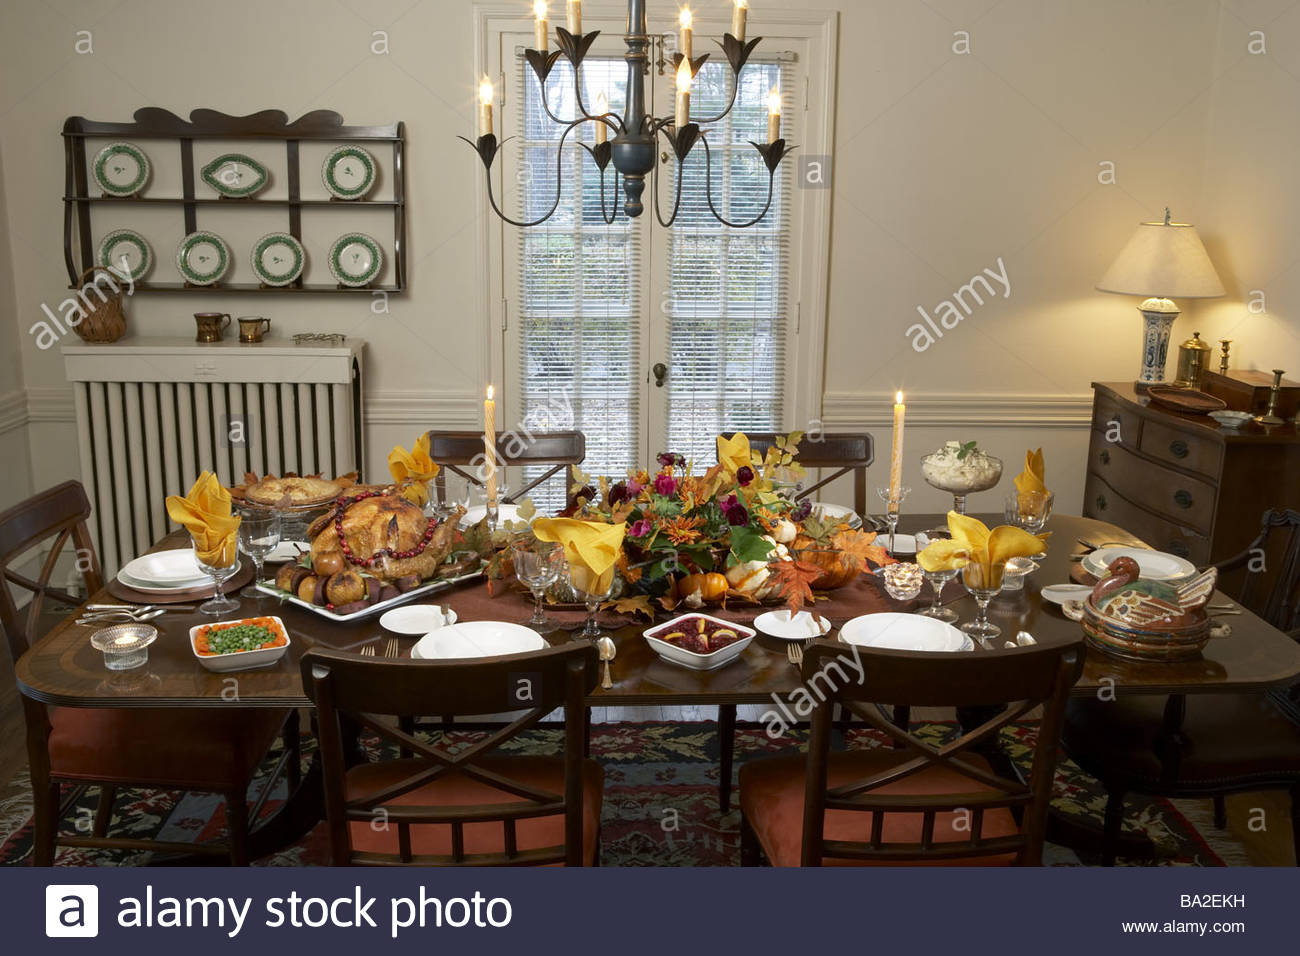 Thanksgiving dining table covered festively plate turkey  : thanksgiving dining table covered festively plate turkey supplements BA2EKH from www.alamy.com size 1300 x 956 jpeg 180kB